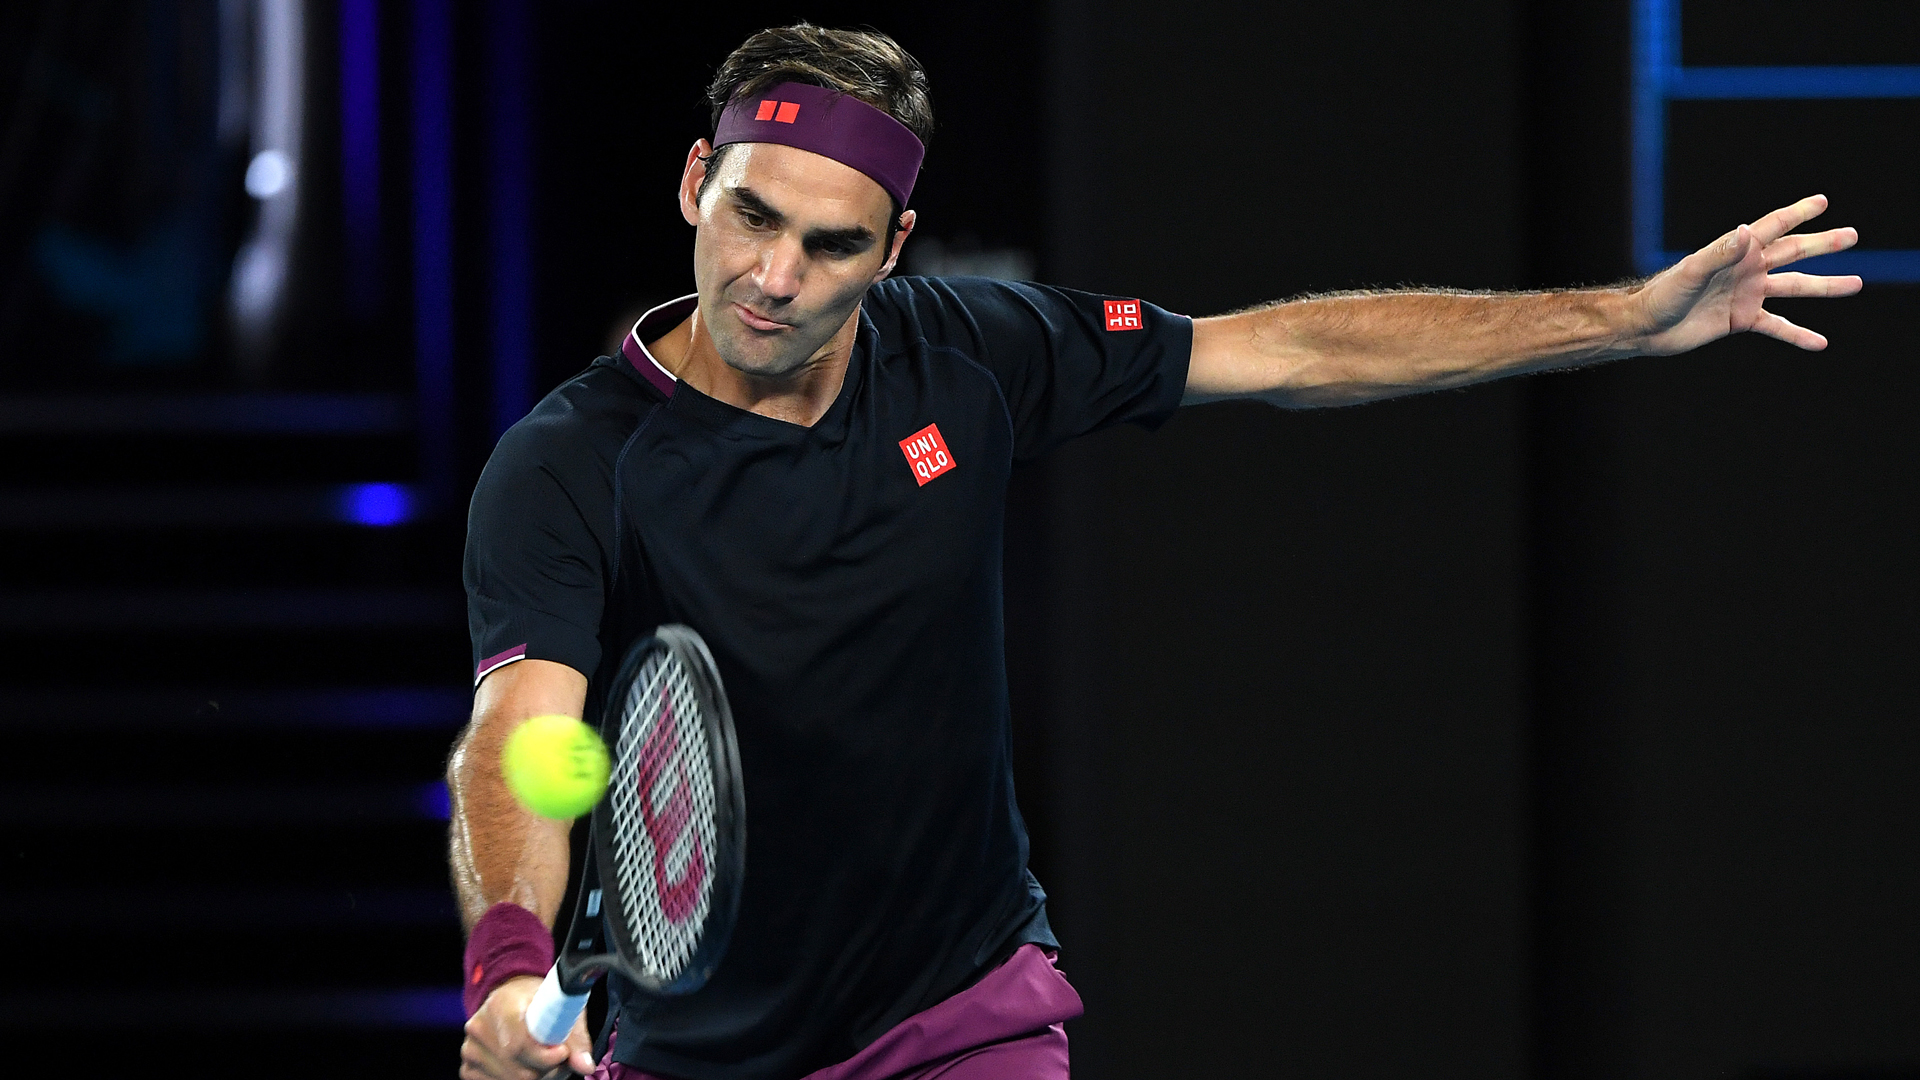 With the ATP Tour suspended due to coronavirus, Roger Federer challenged fans and celebrities on social media.